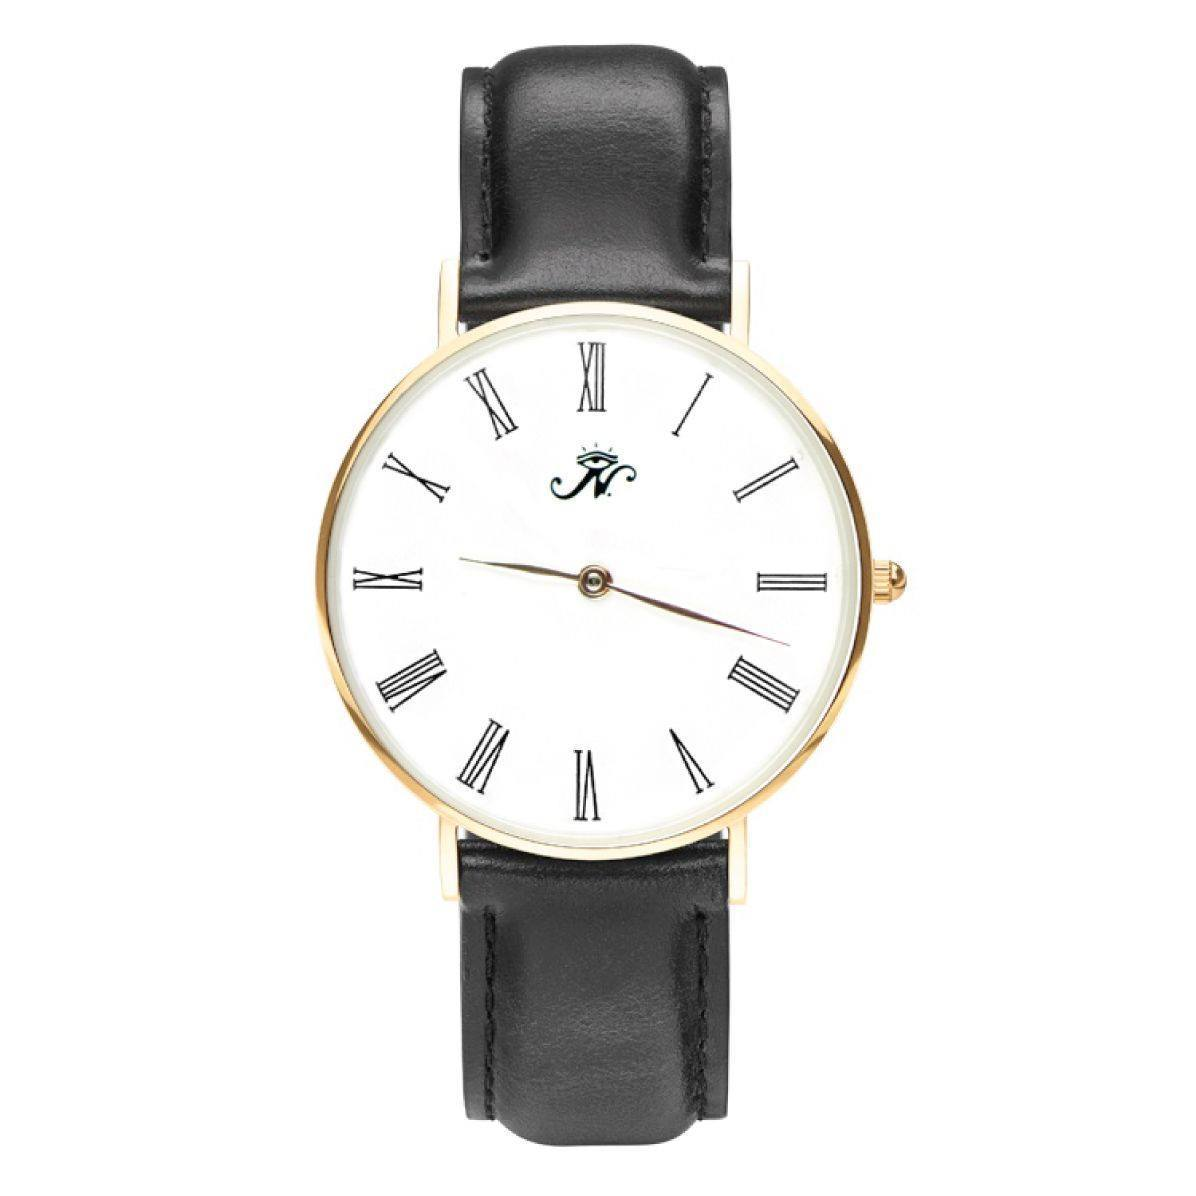 Lansdowne - Designer Watch Timepiece in Gold with Genuine Black Leather and Roman Numerals Style Face